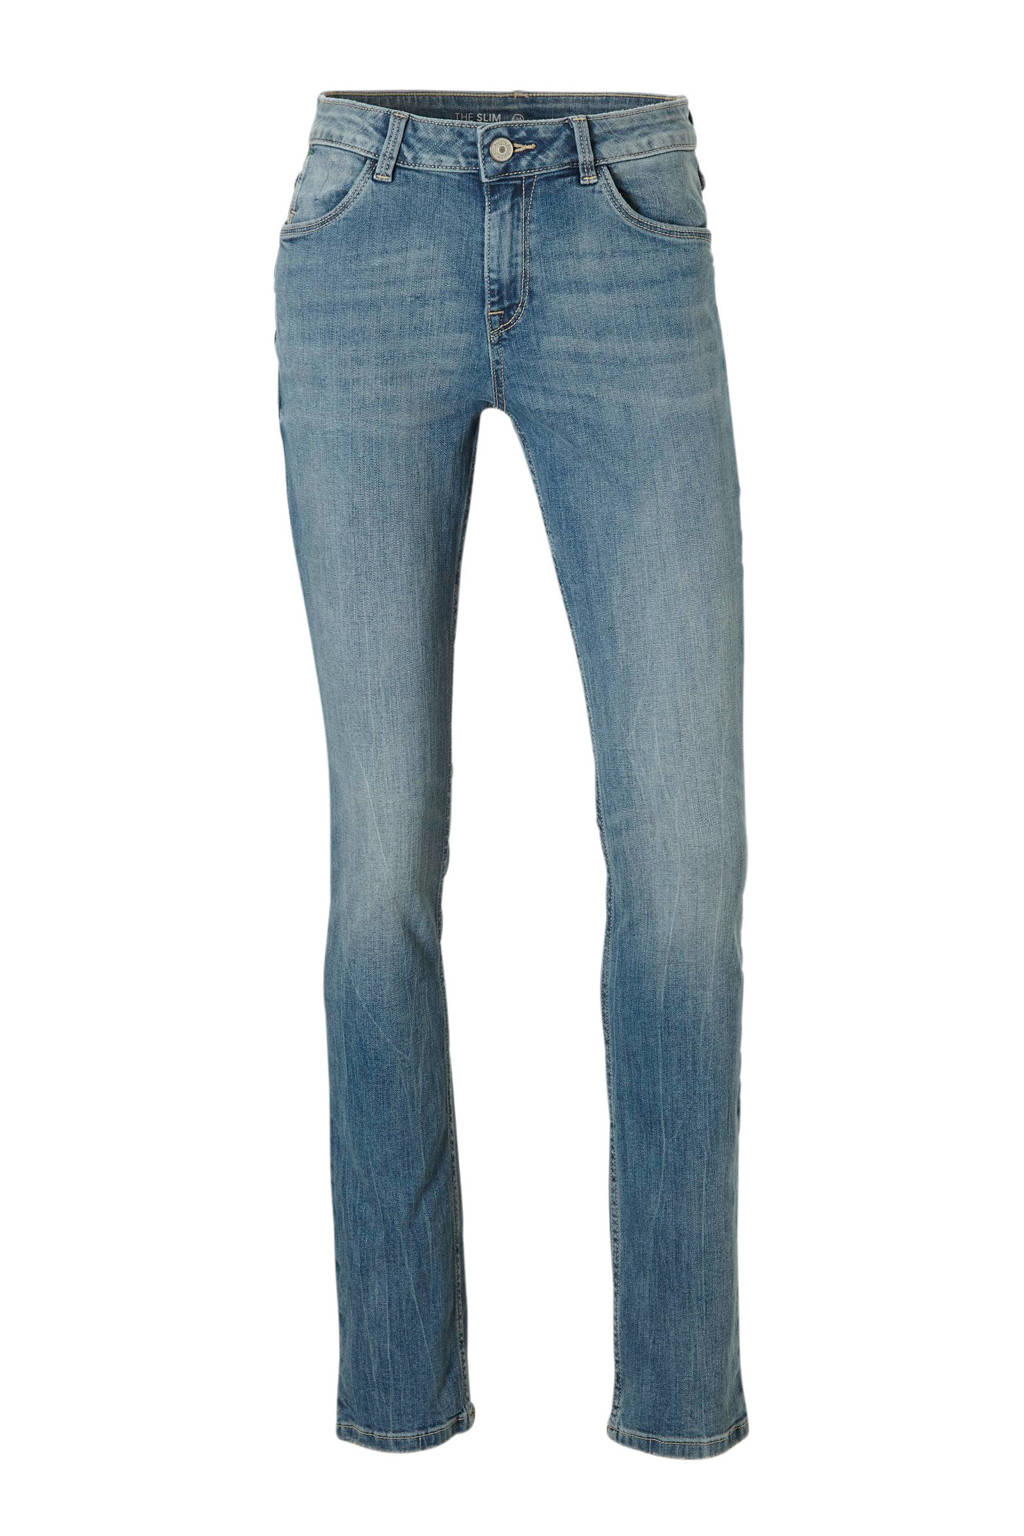 C&A The Denim slim fit jeans, Stonewashed